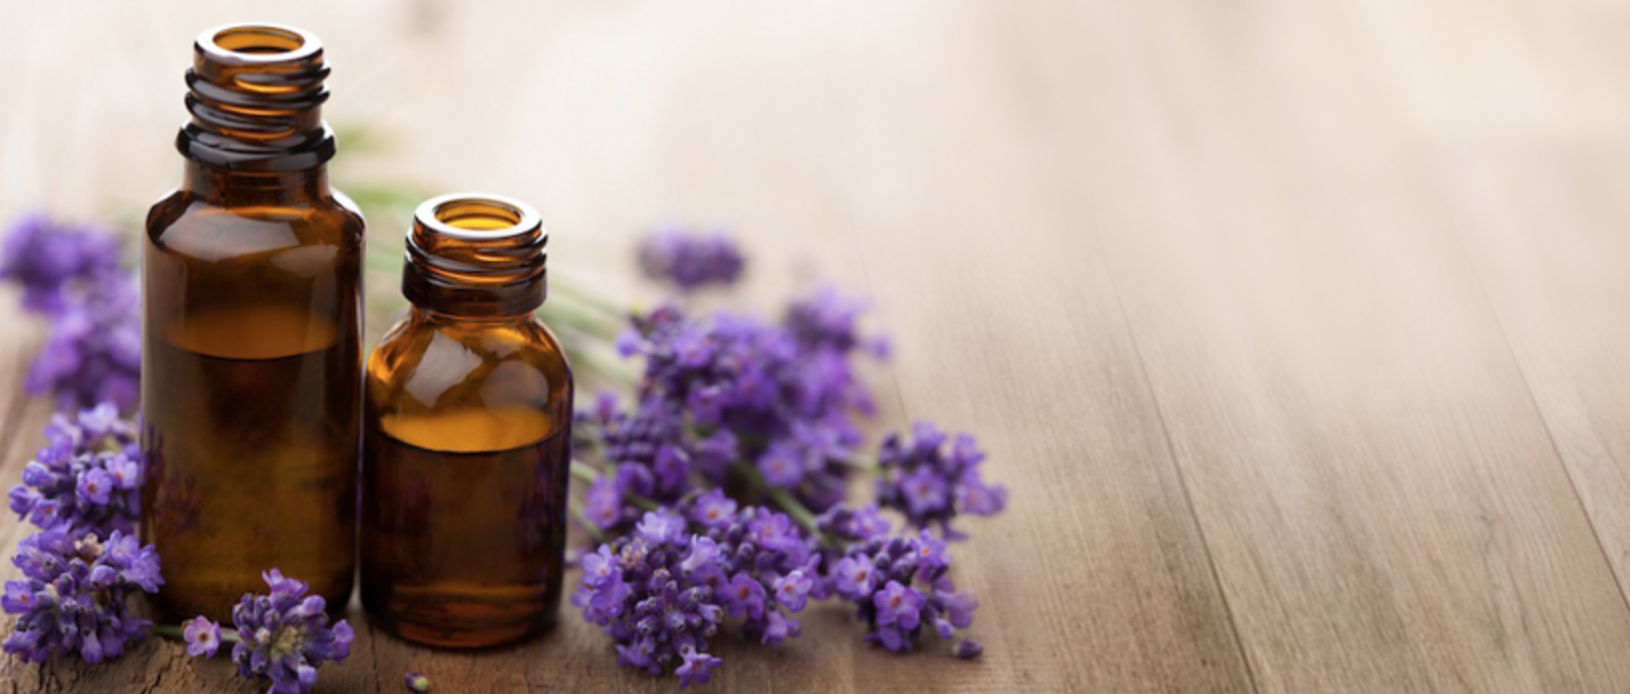 8-most-benefitial-essential-oils.png (1630×694)